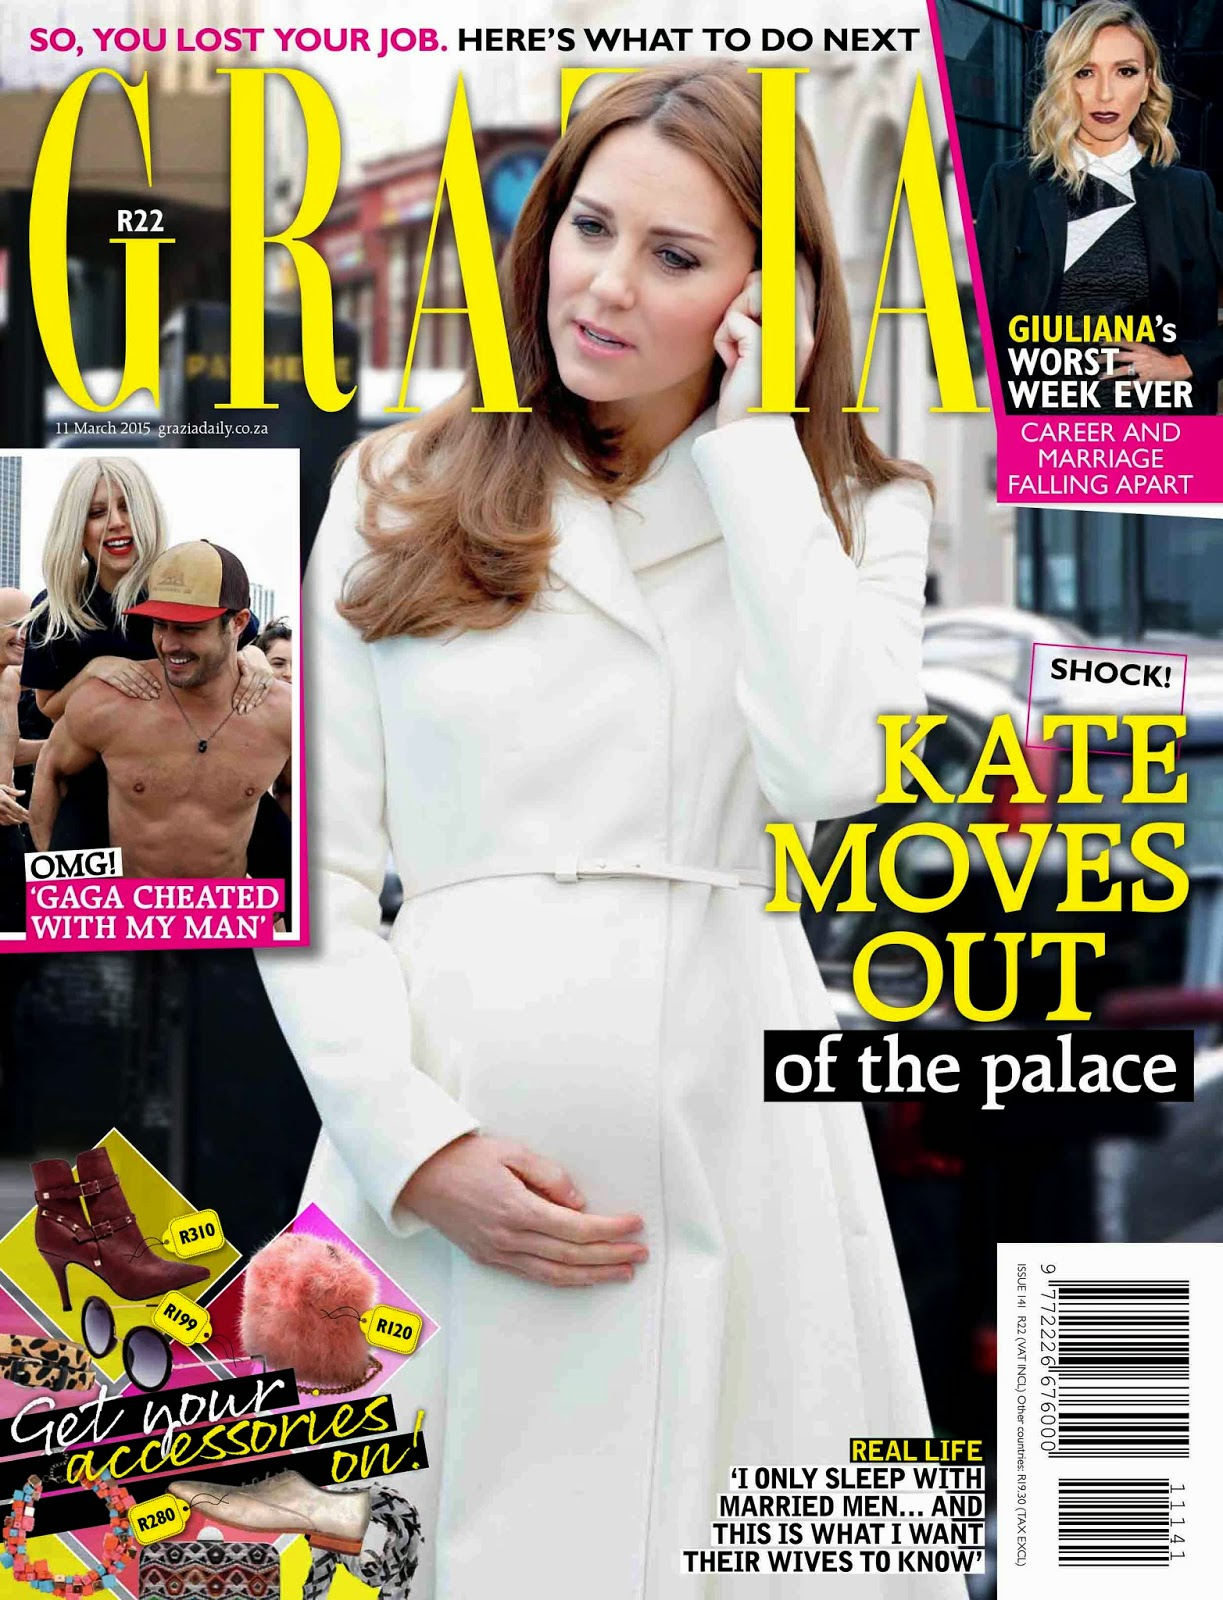 Princess, Duchess of Cambridge @ Kate Middleton - Grazia South Africa, March 2015